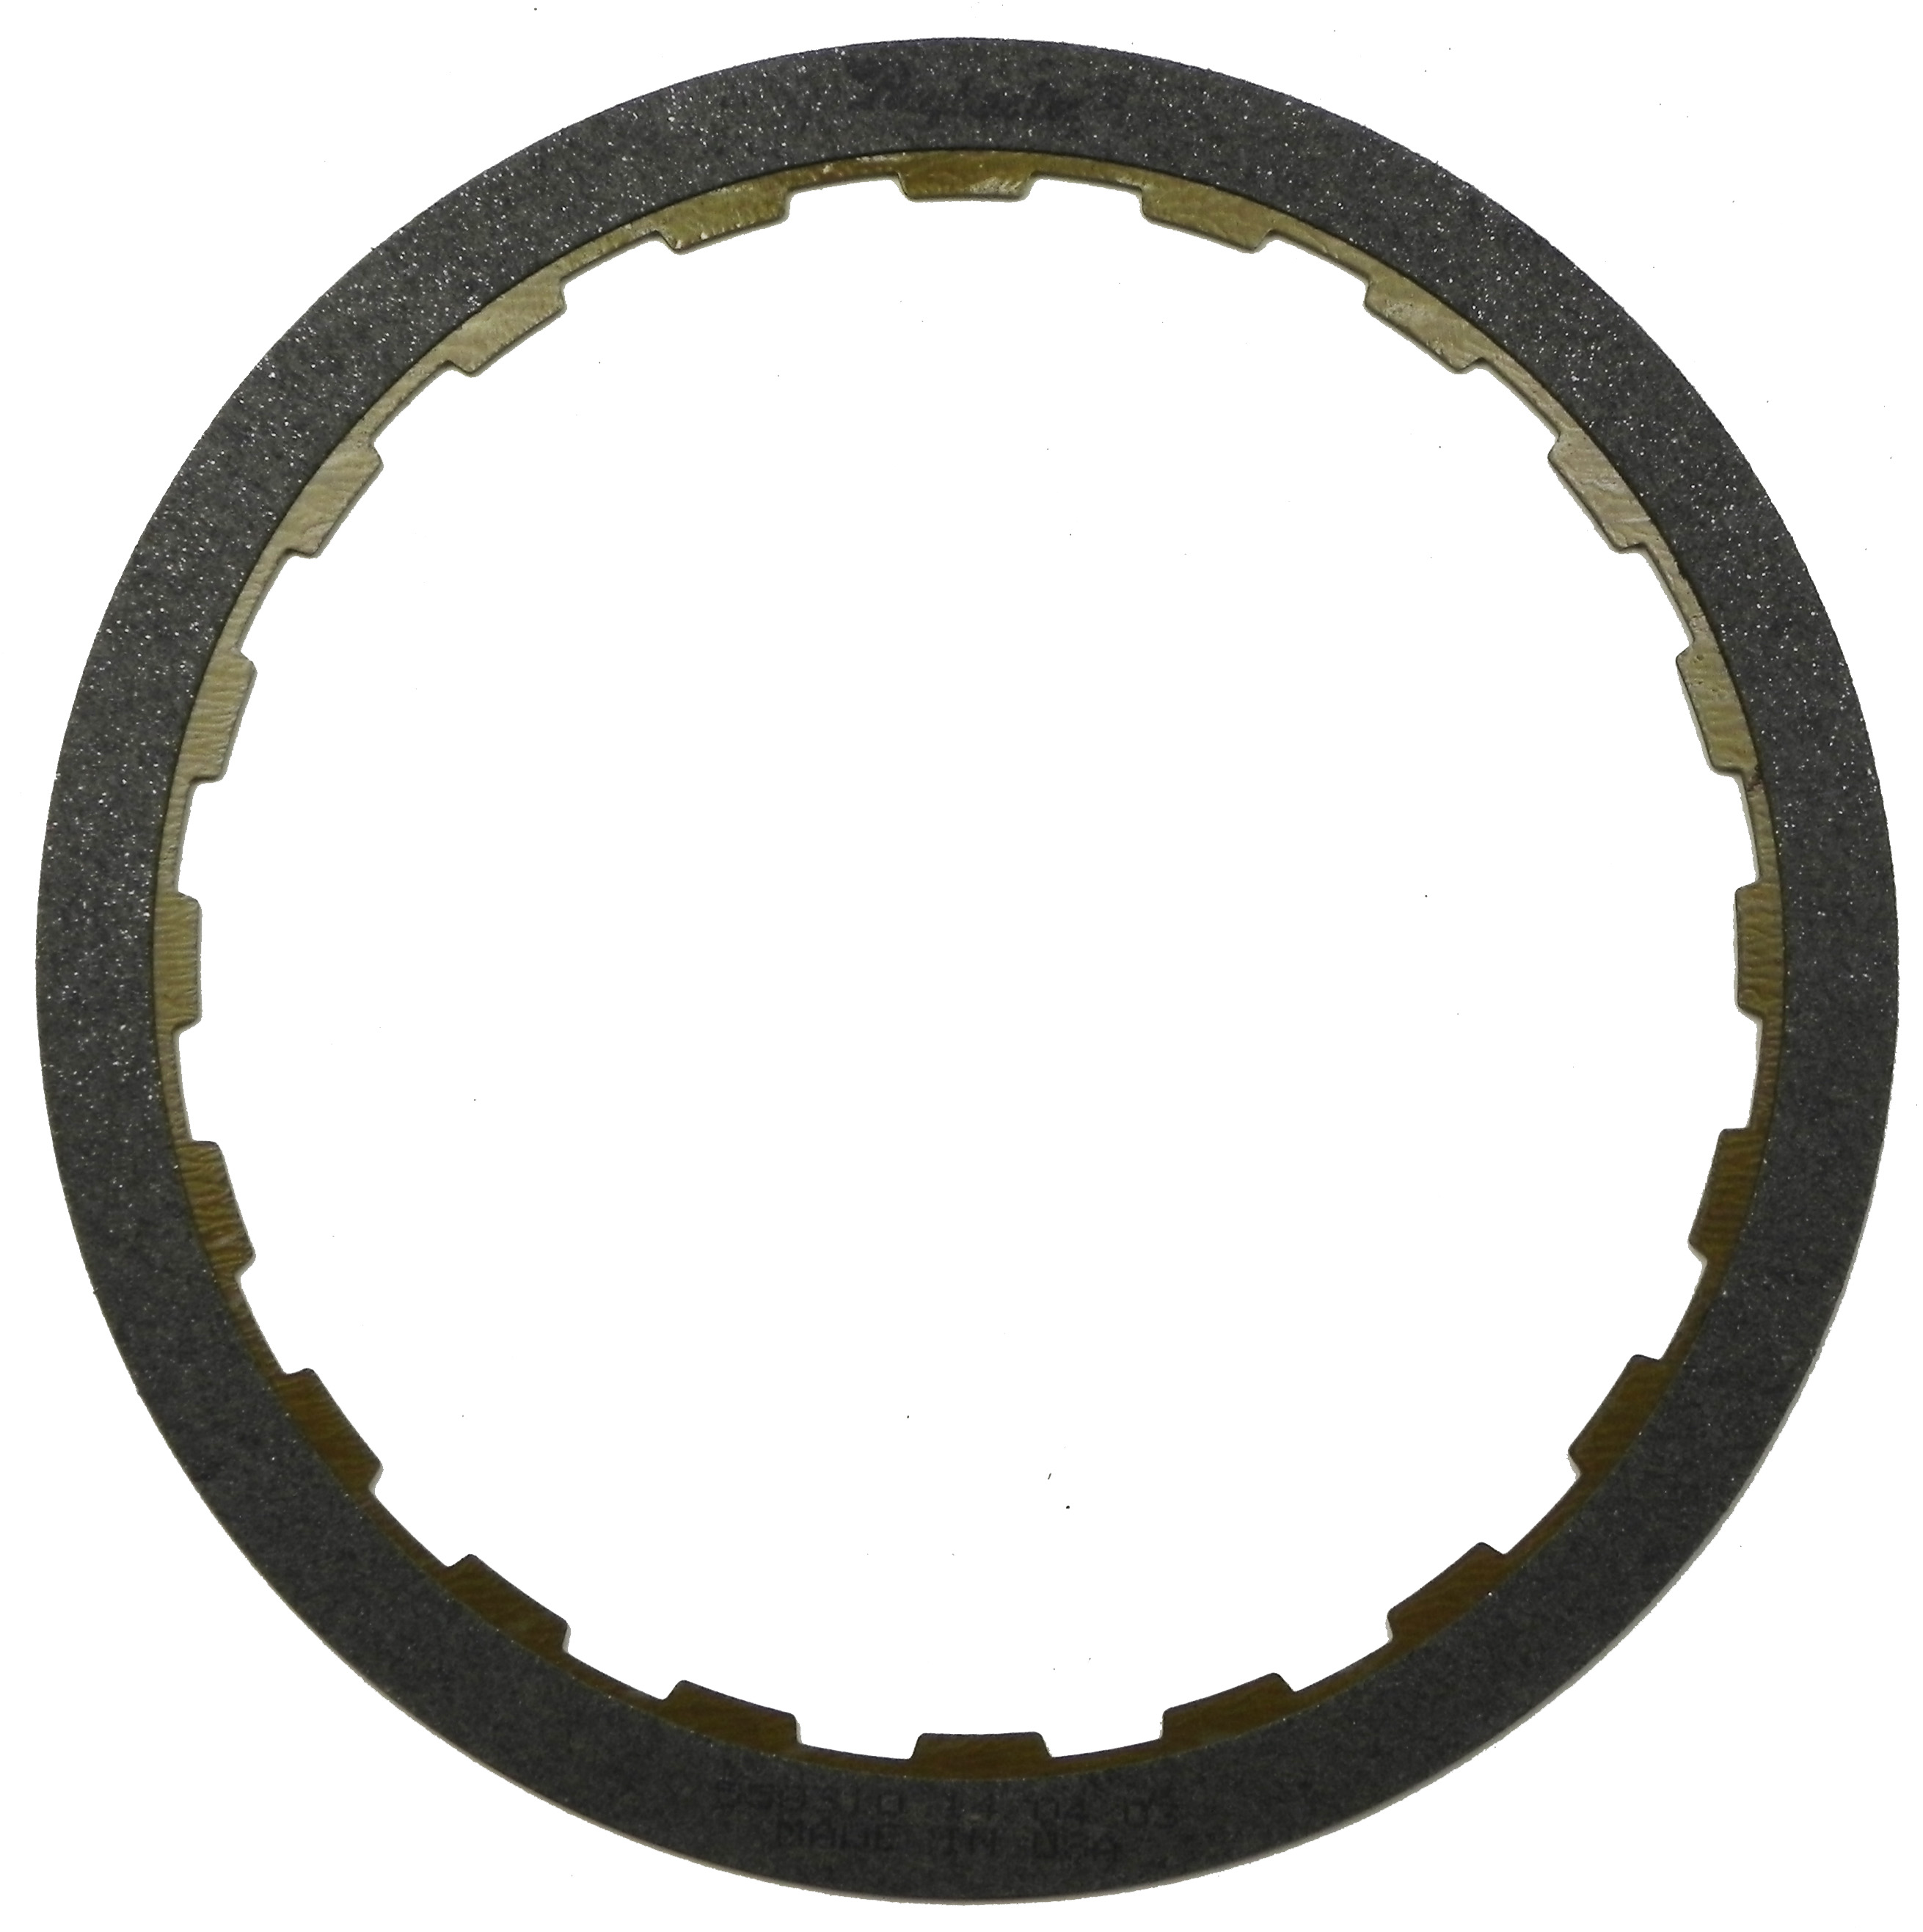 R558310 | 1982-ON Friction Clutch Plate High Energy 3rd, 4th High Energy (Hardened Core)